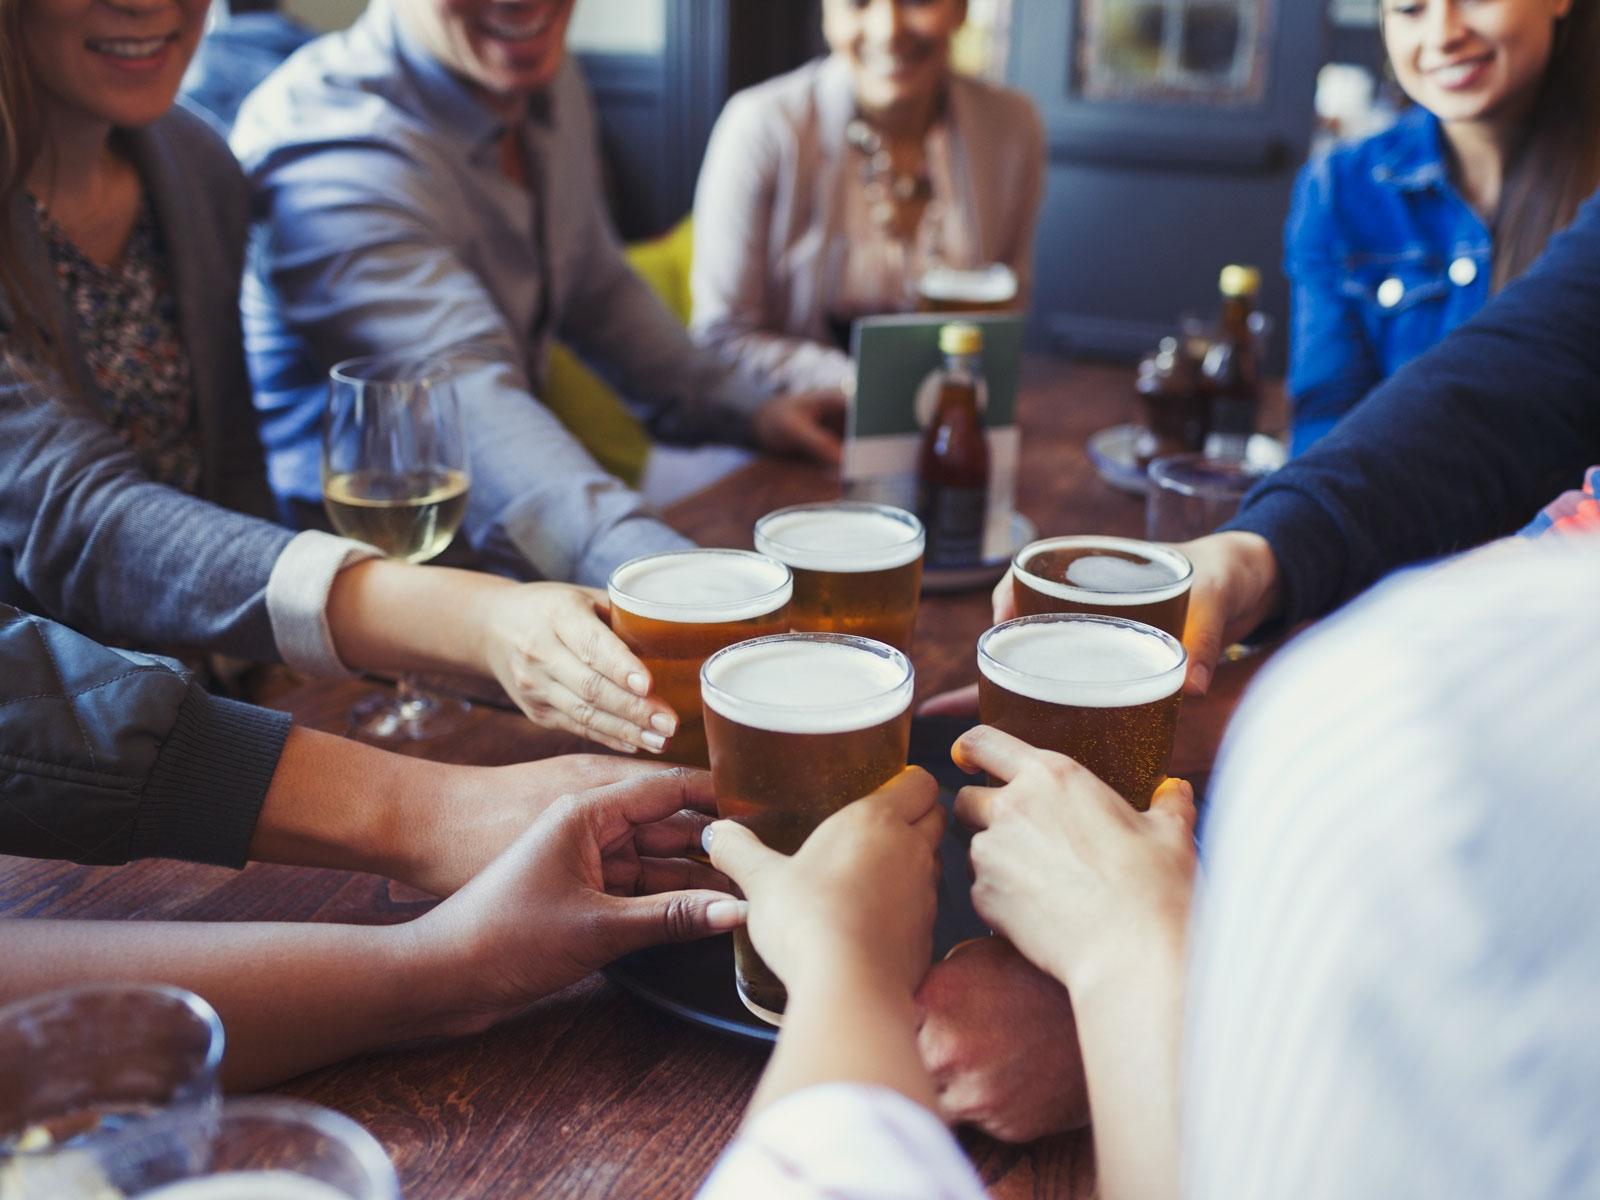 young-people-beer-stats-FT-BLOG0618.jpg